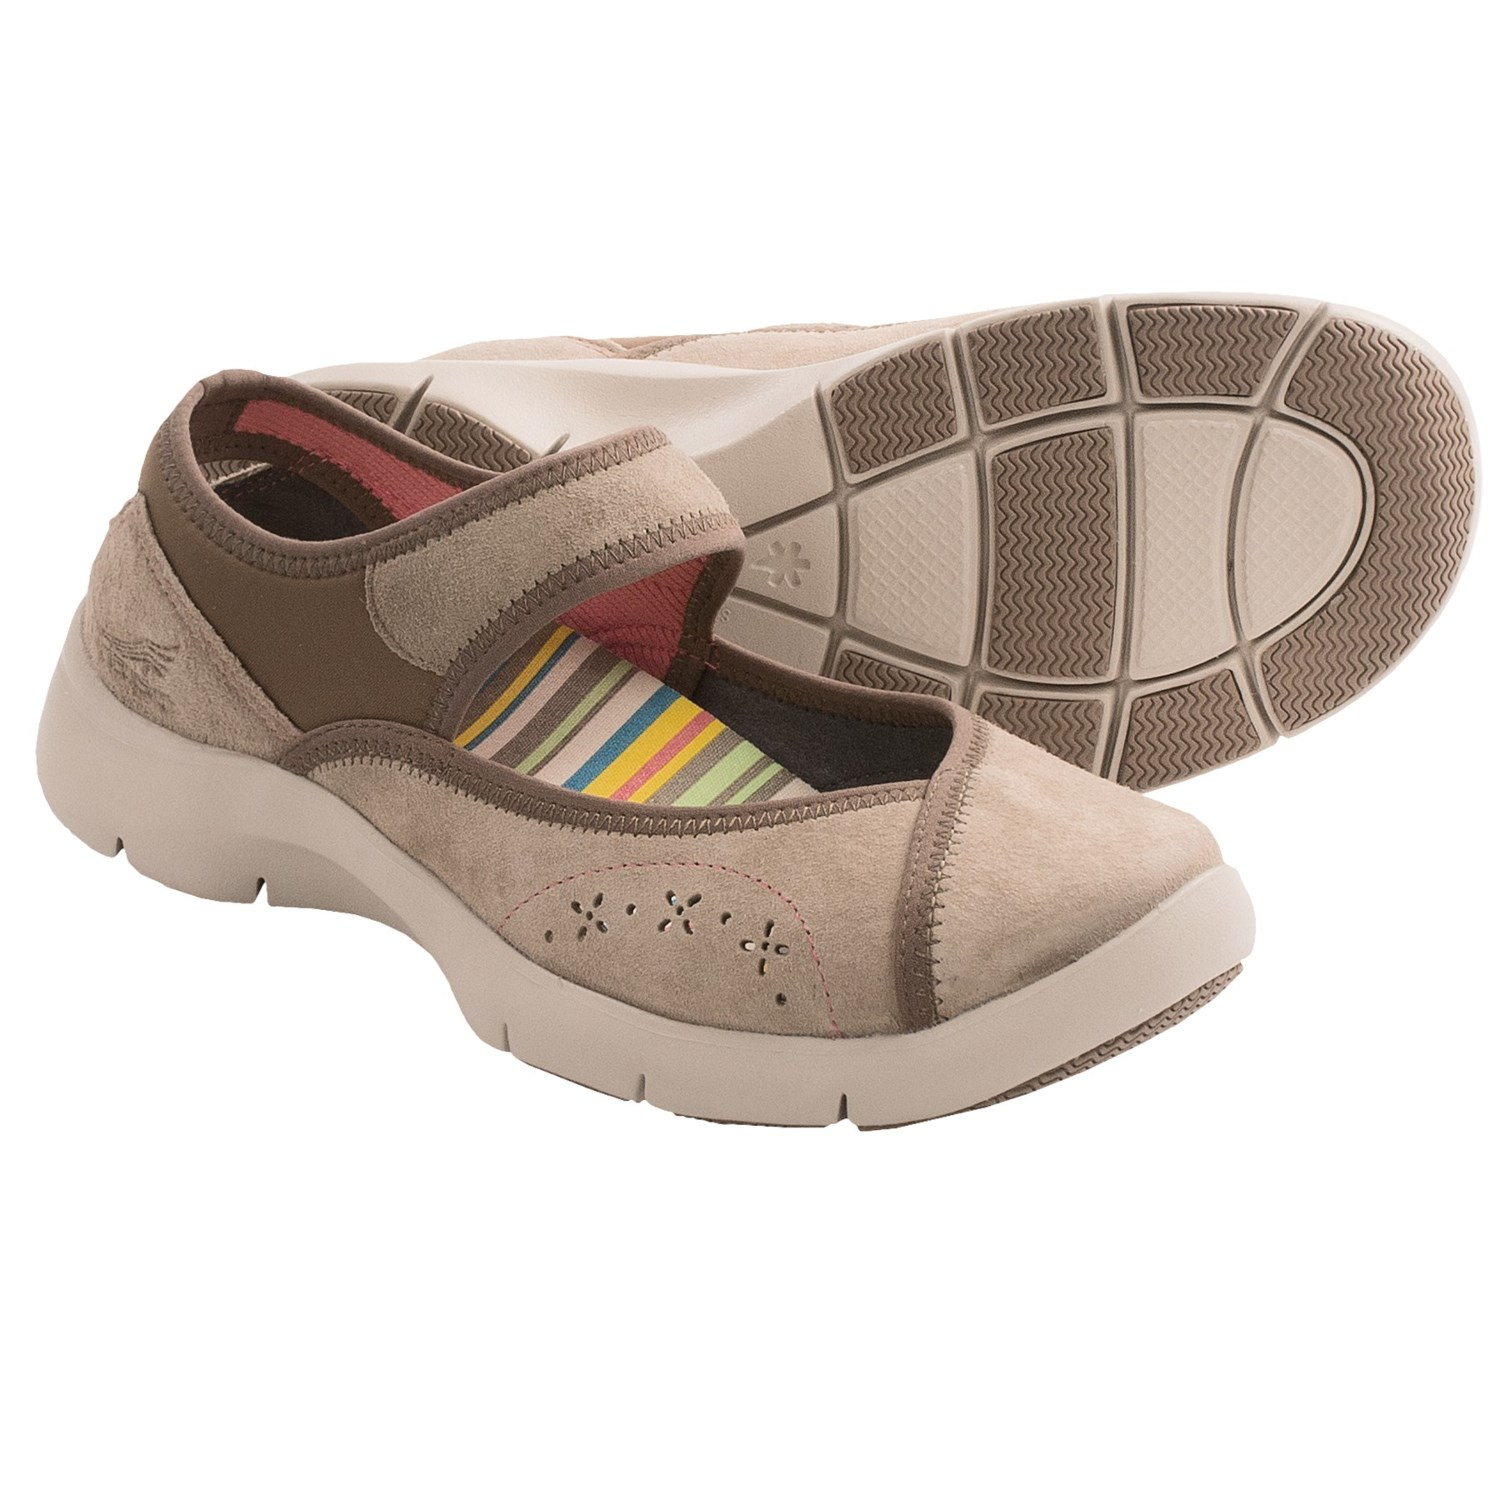 Women's Dansko Reeny Casual Mary Jane Shoes Product Video   Womens